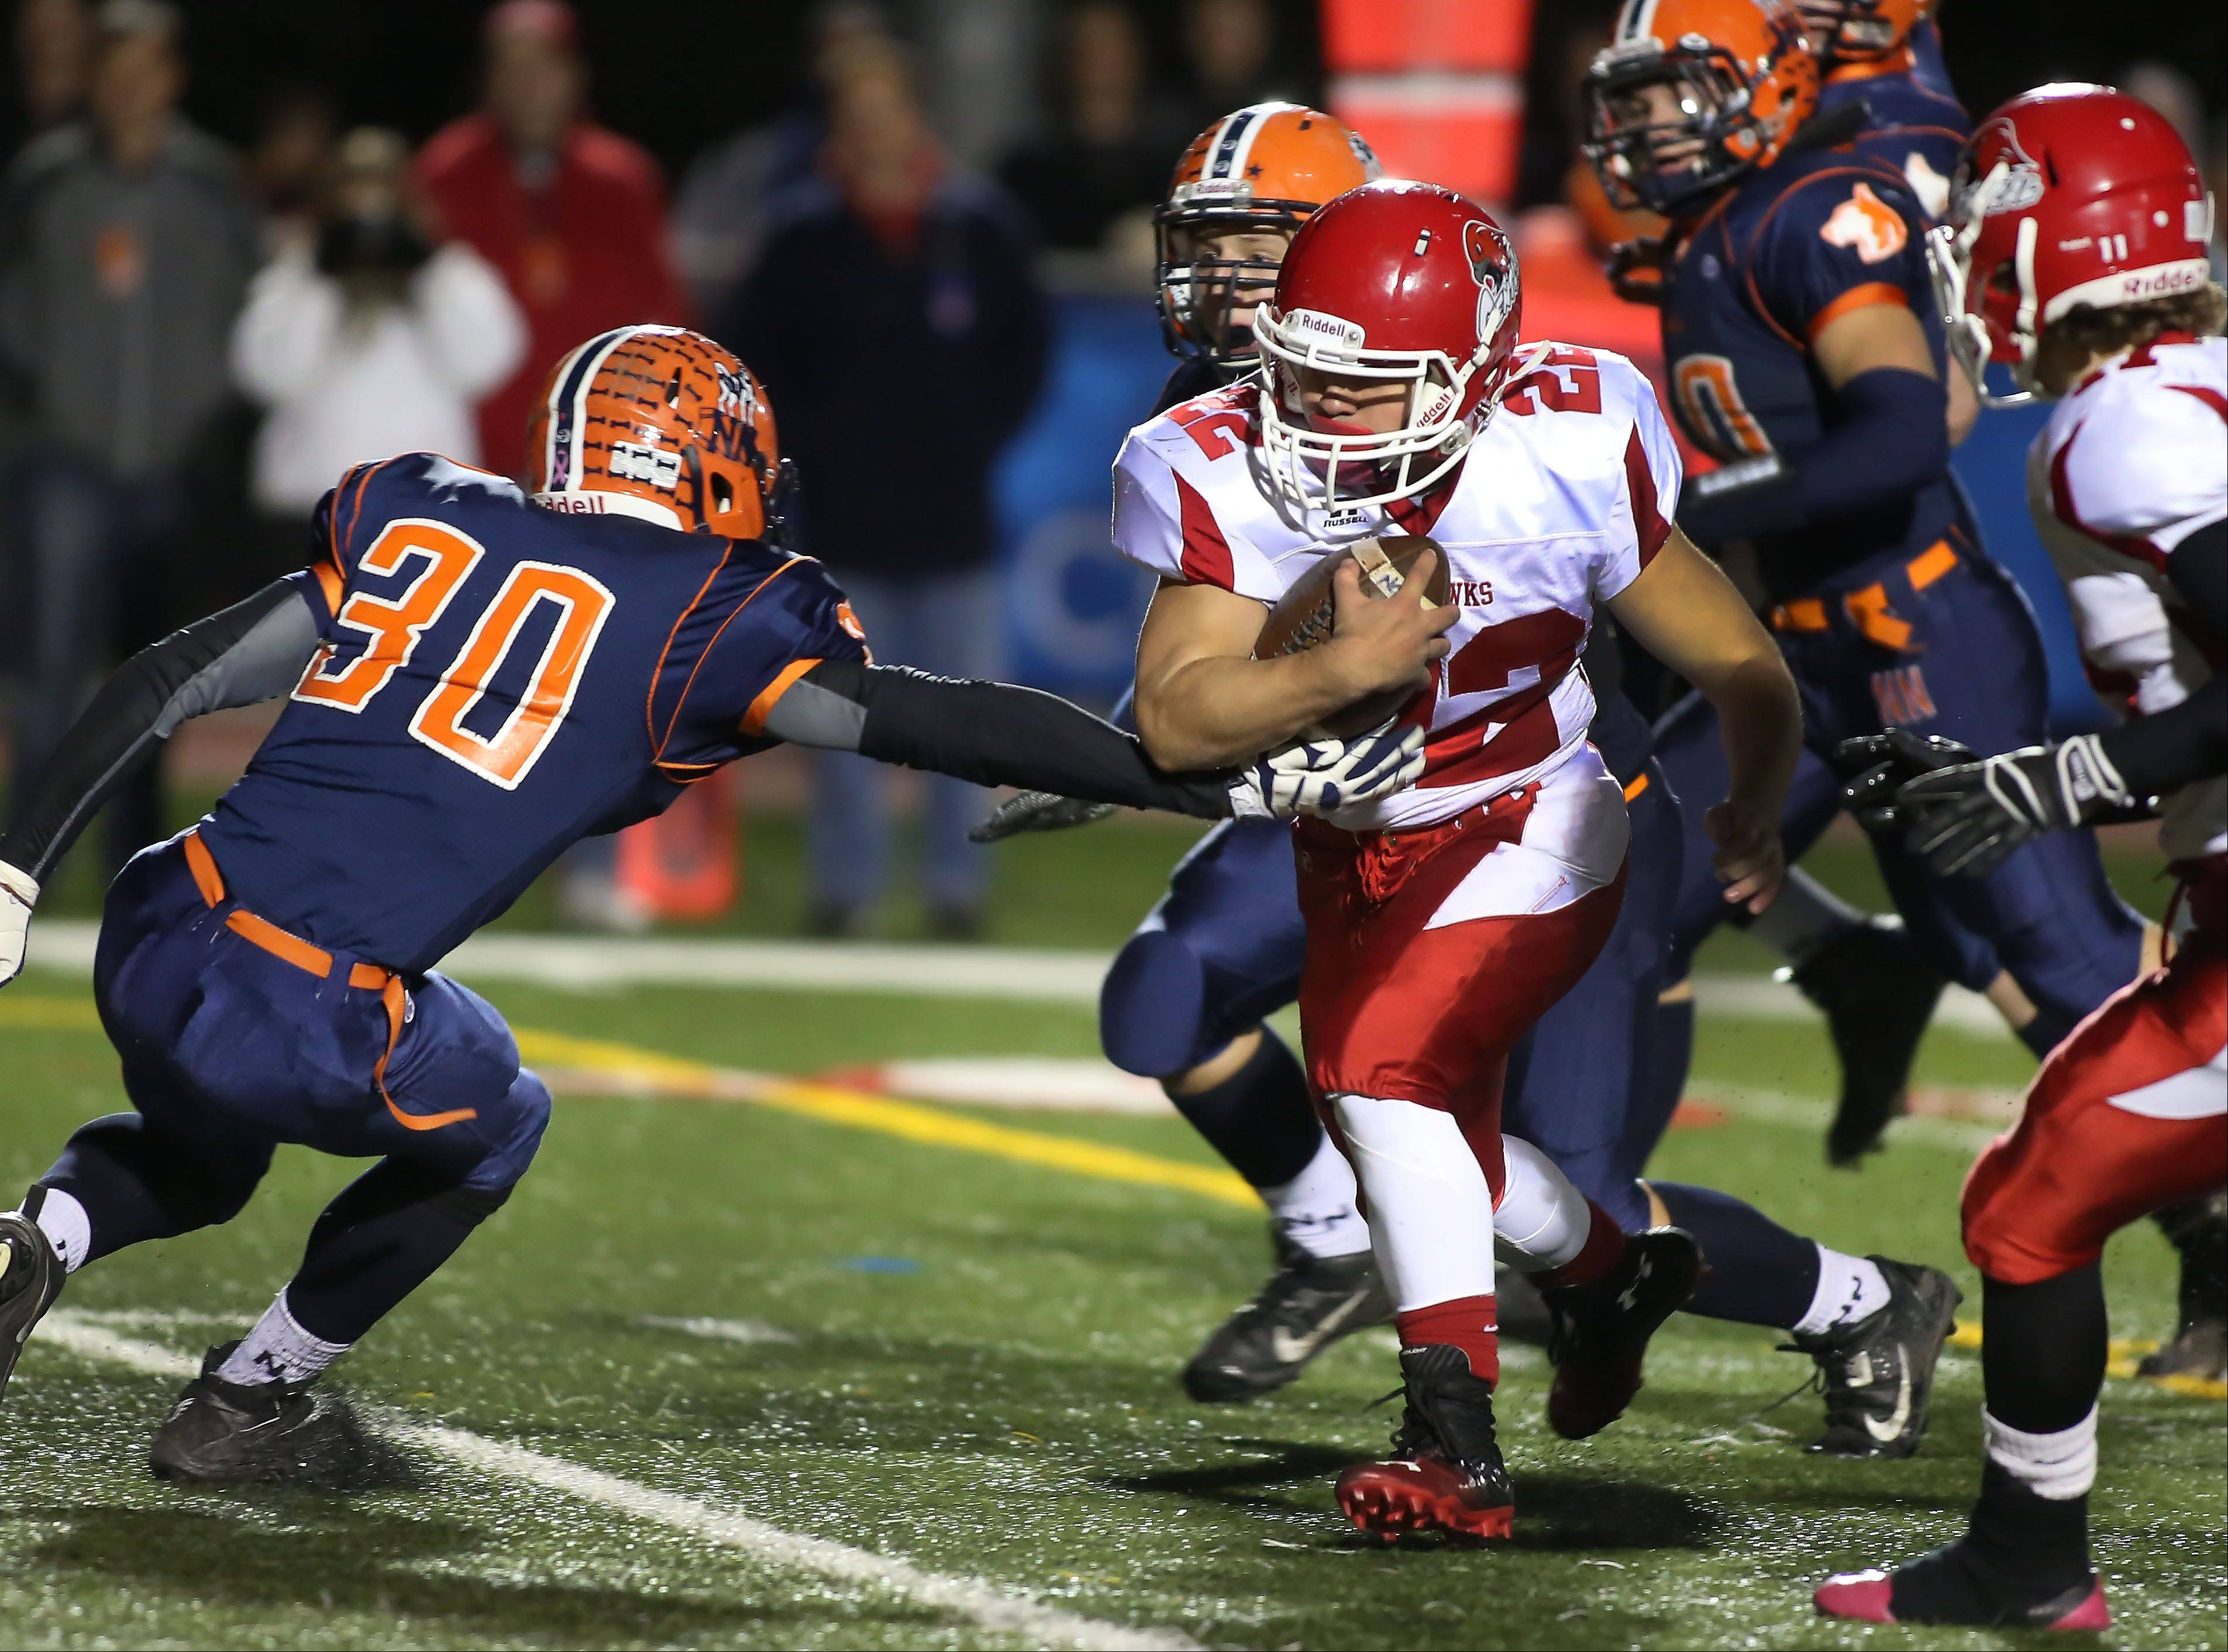 Adam Milsap, left, of Naperville North moves in to try and prevent Kevin Clifford of Naperville Central from making a touchdown in the second quarter.